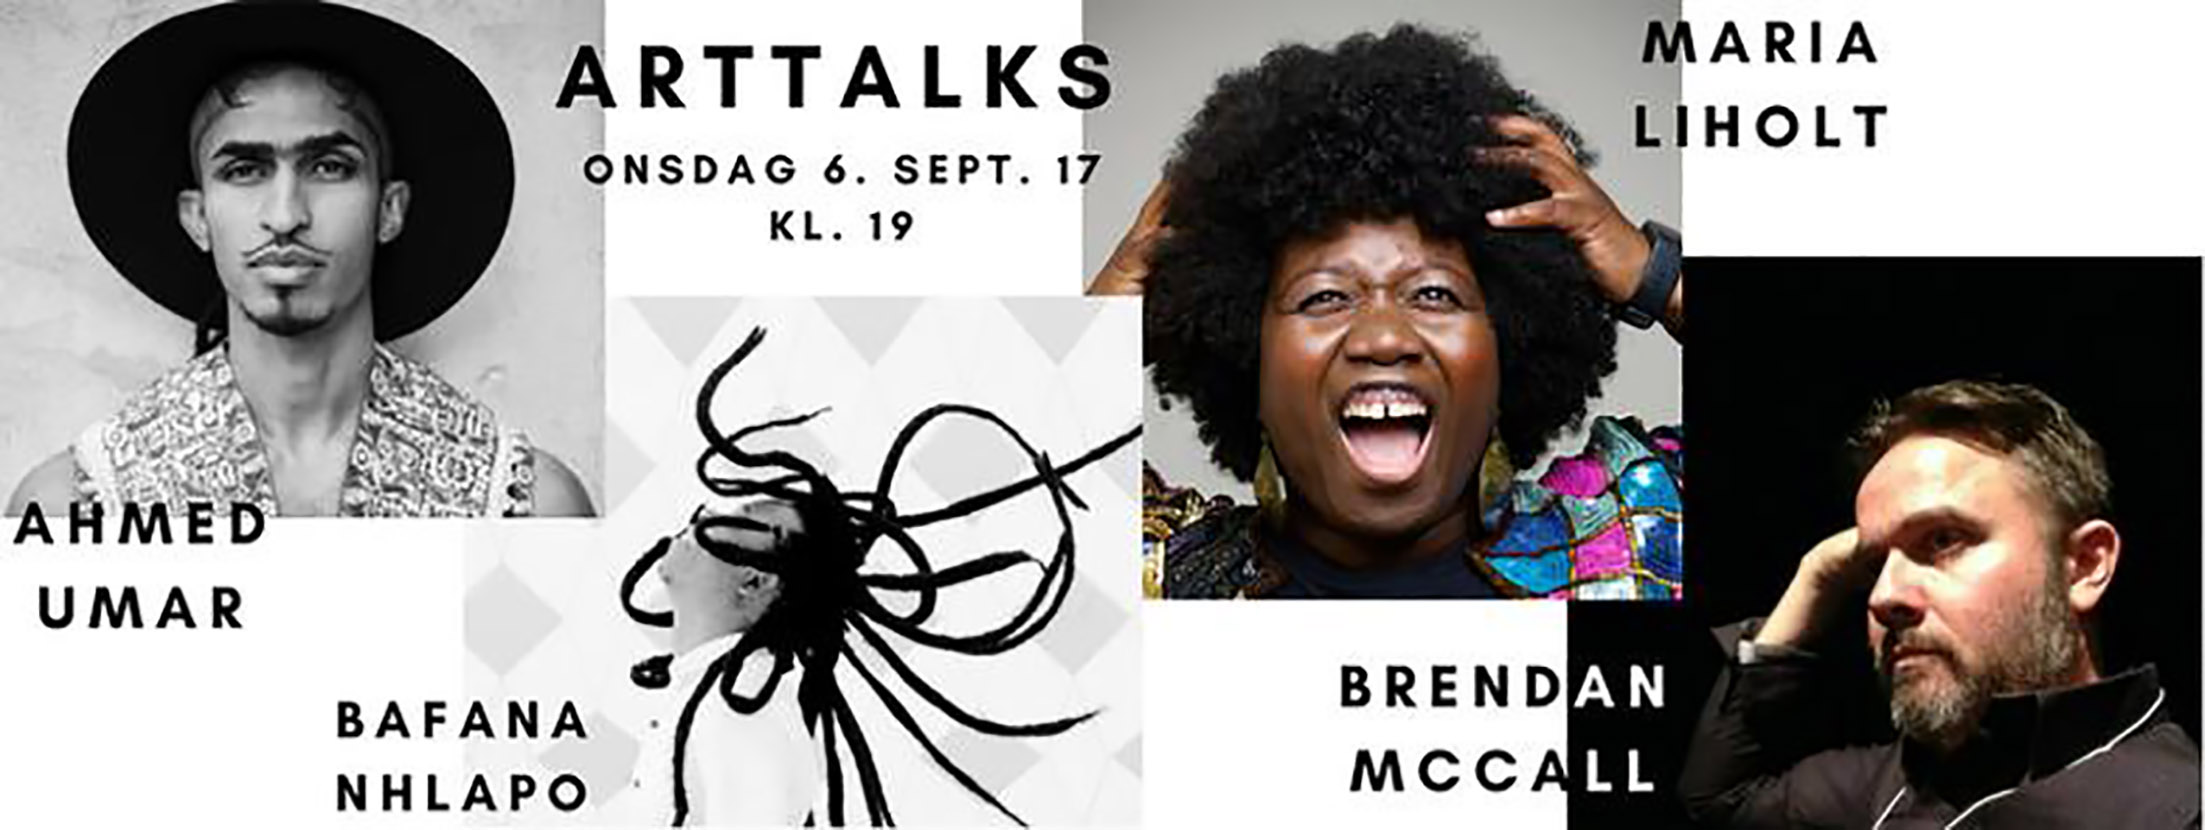 arttalks 6. september